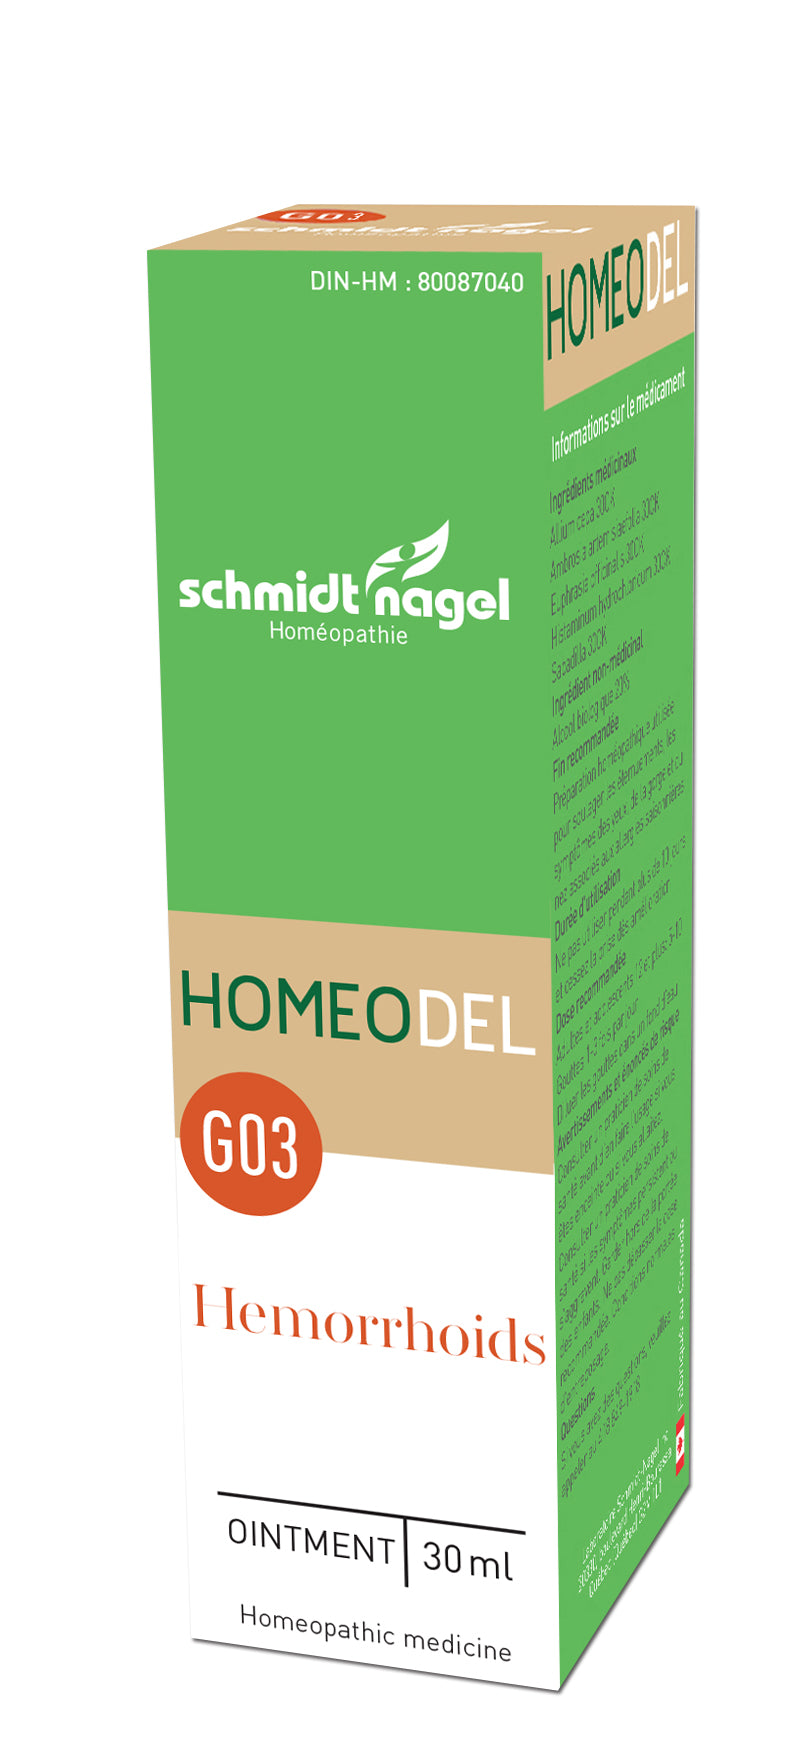 HOMEODEL G03 - Hemorrhoids, SchmidtNagel (Pommade, 30ml)